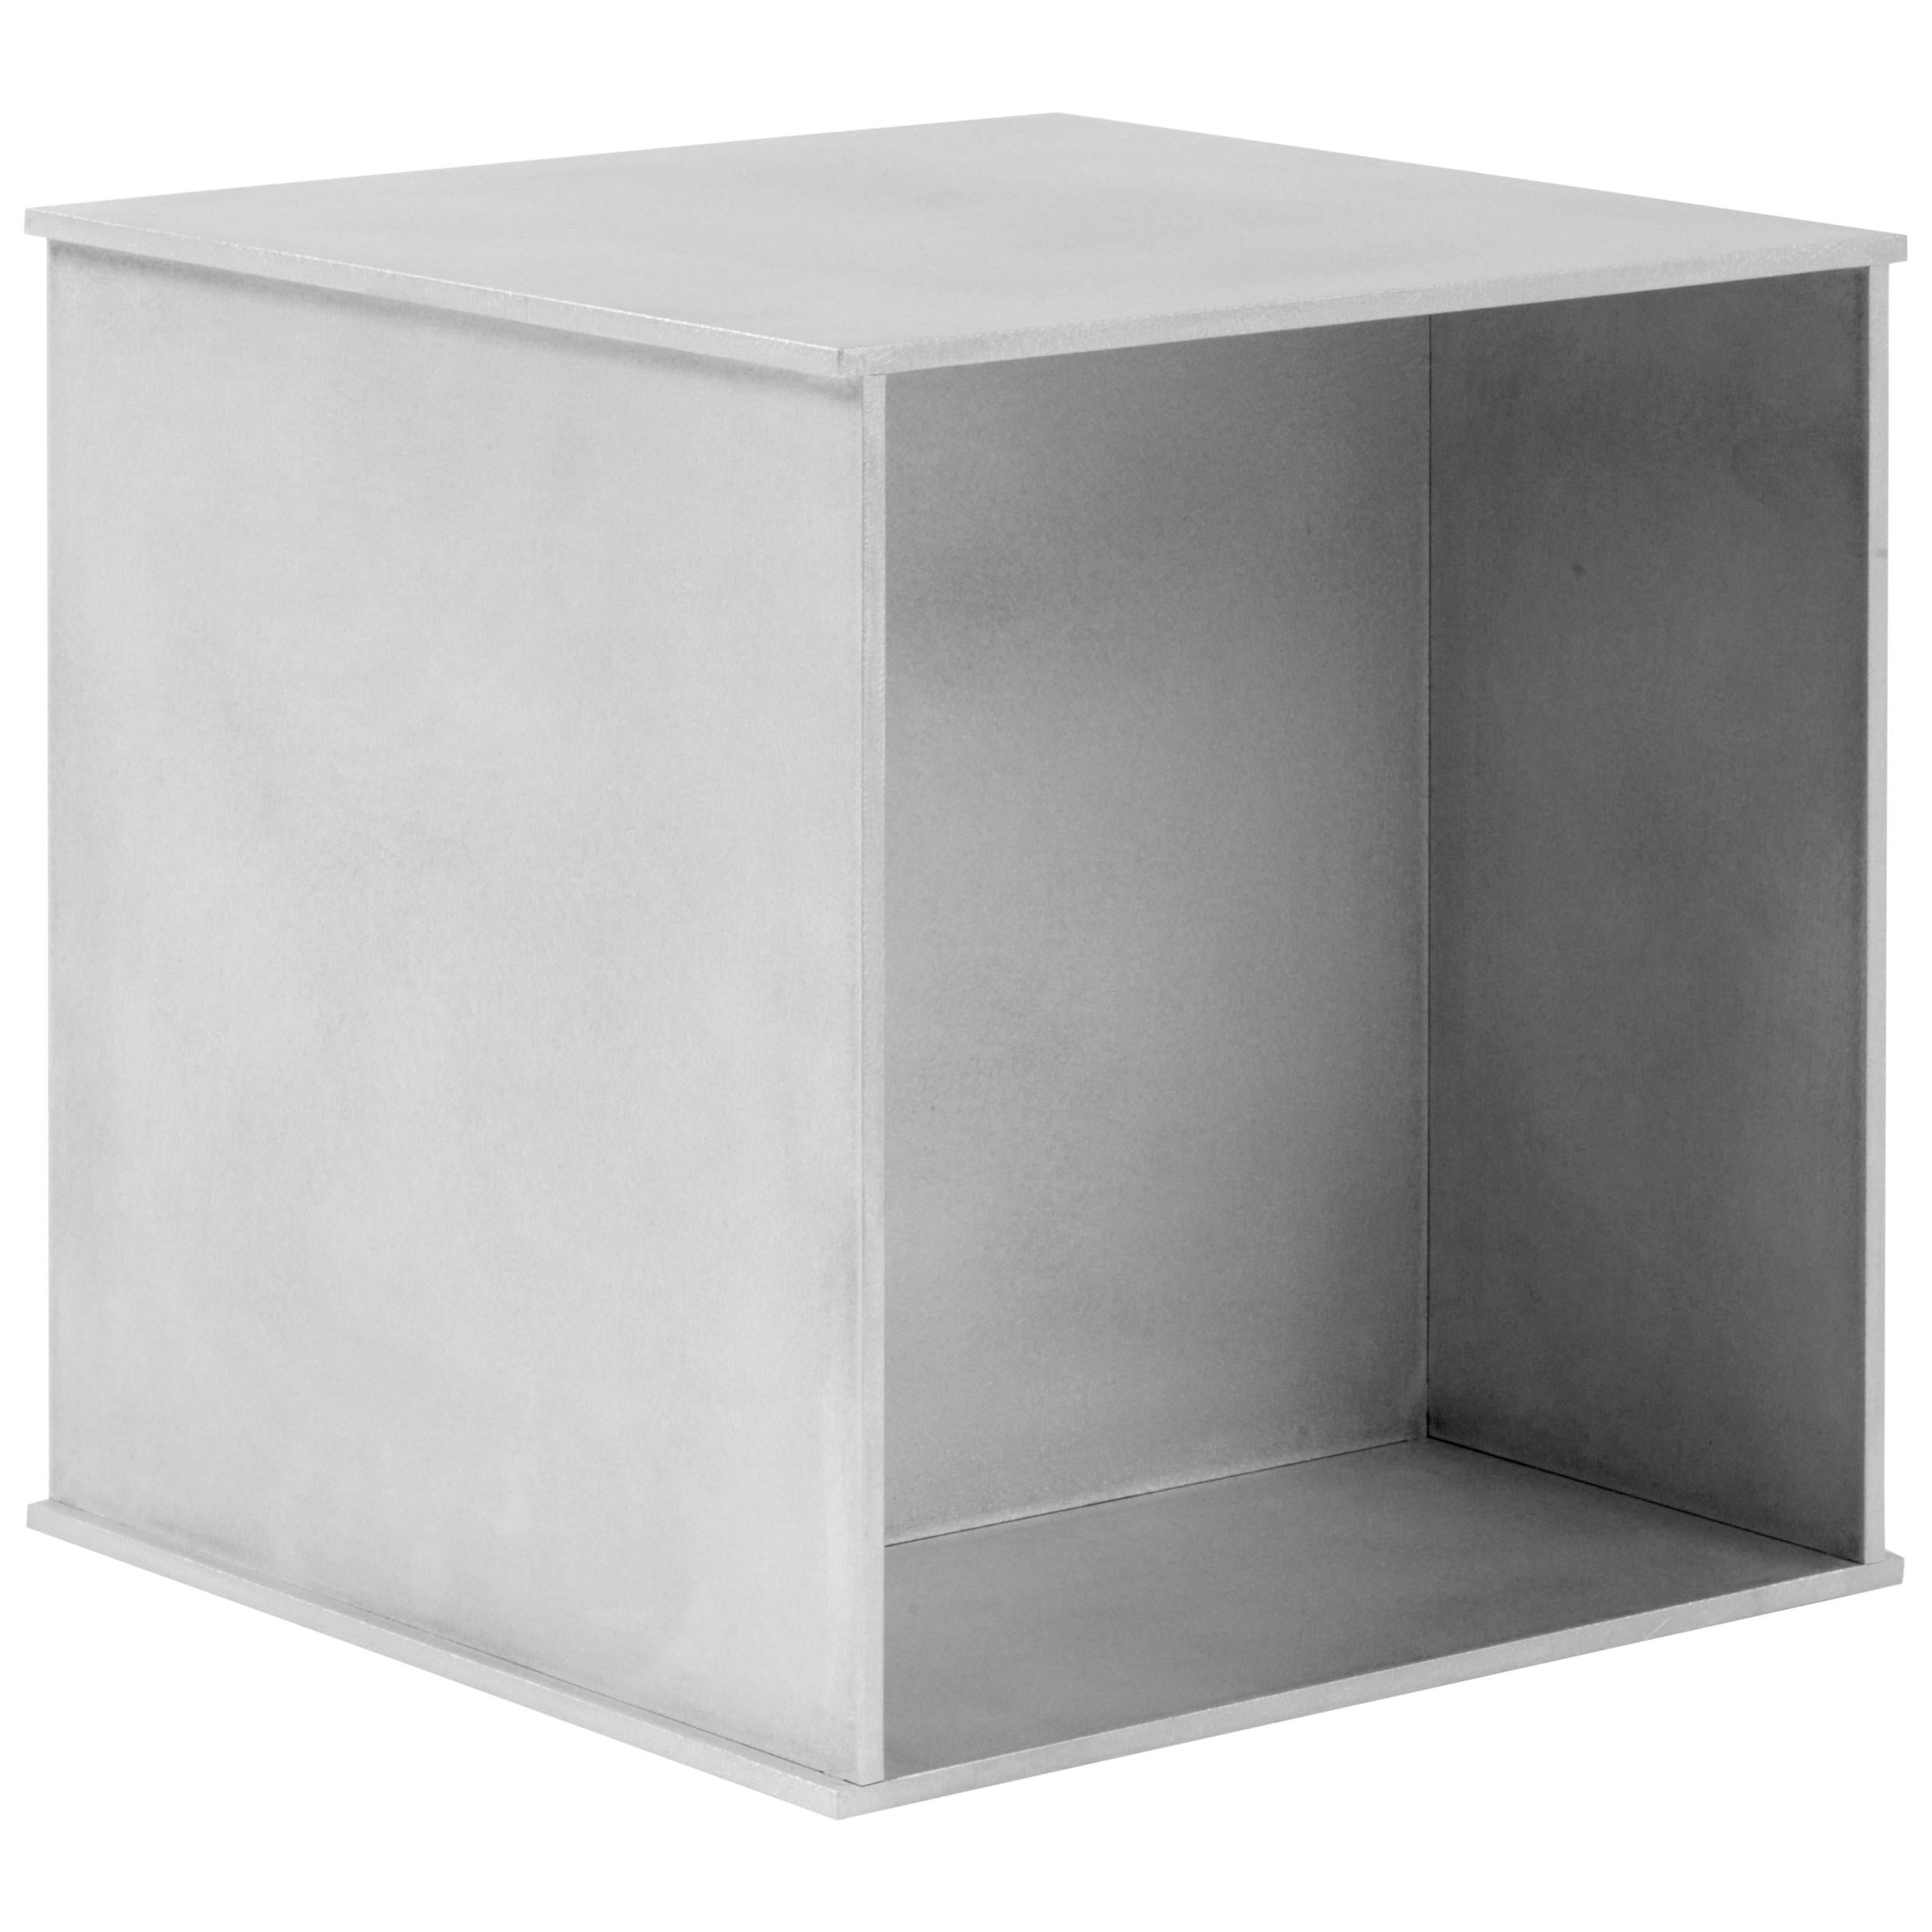 144 Side Table in Waxed Aluminum Plate by Jonathan Nesci